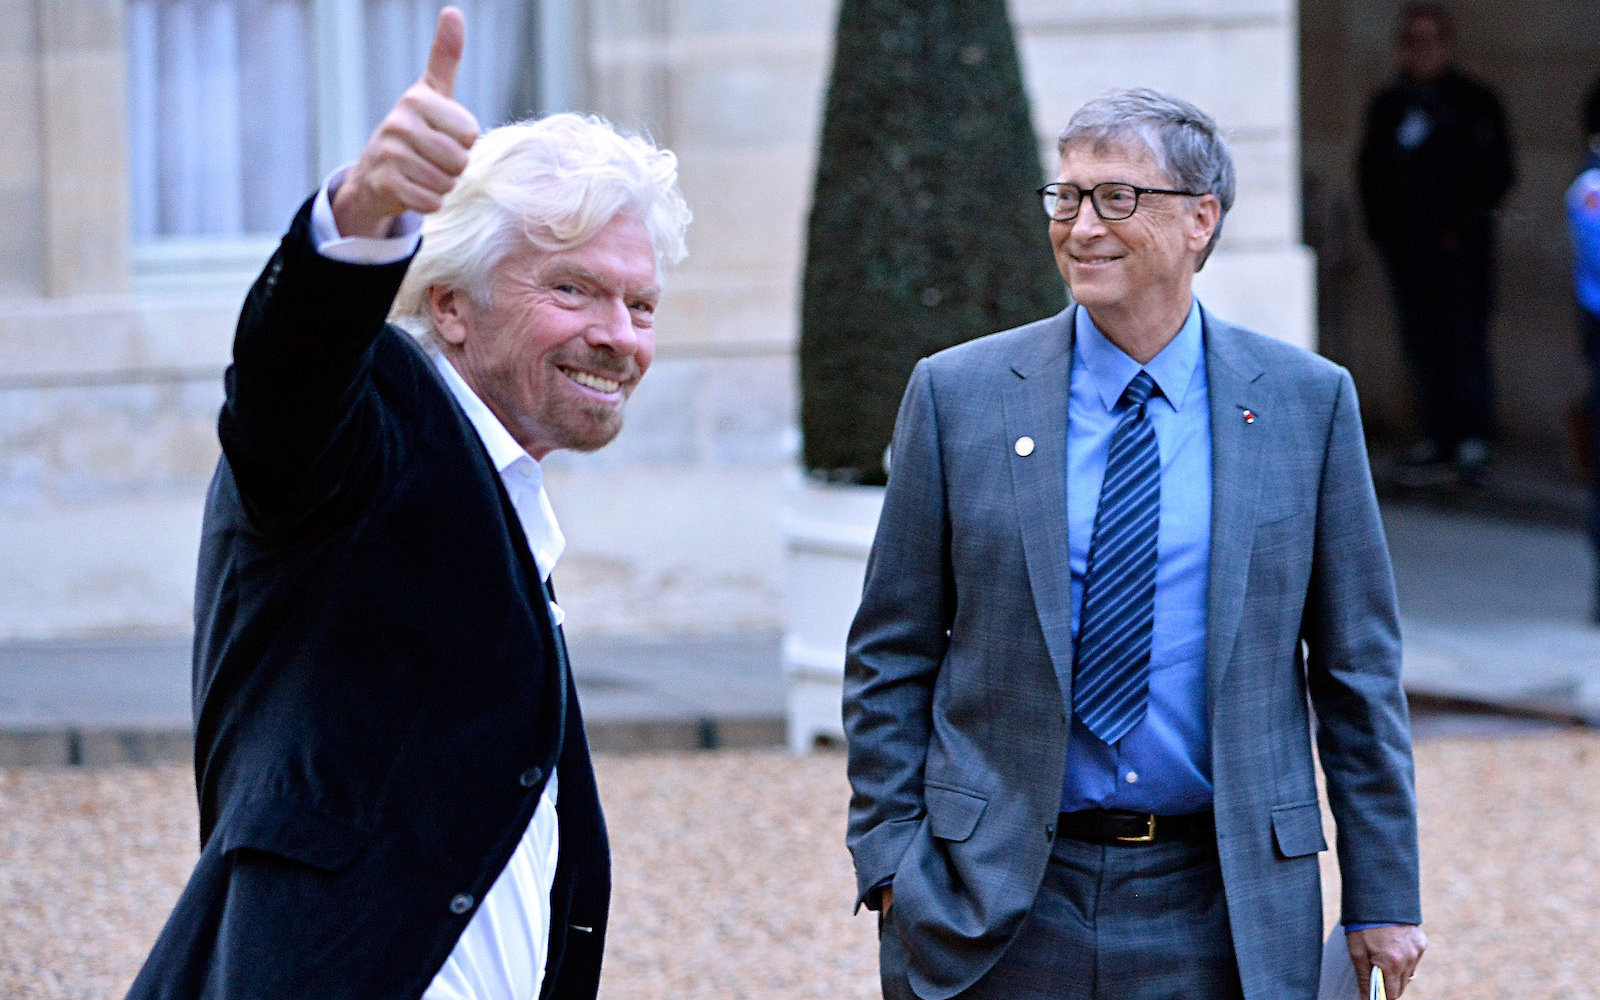 richard branson giving a thumbs up with bill gates